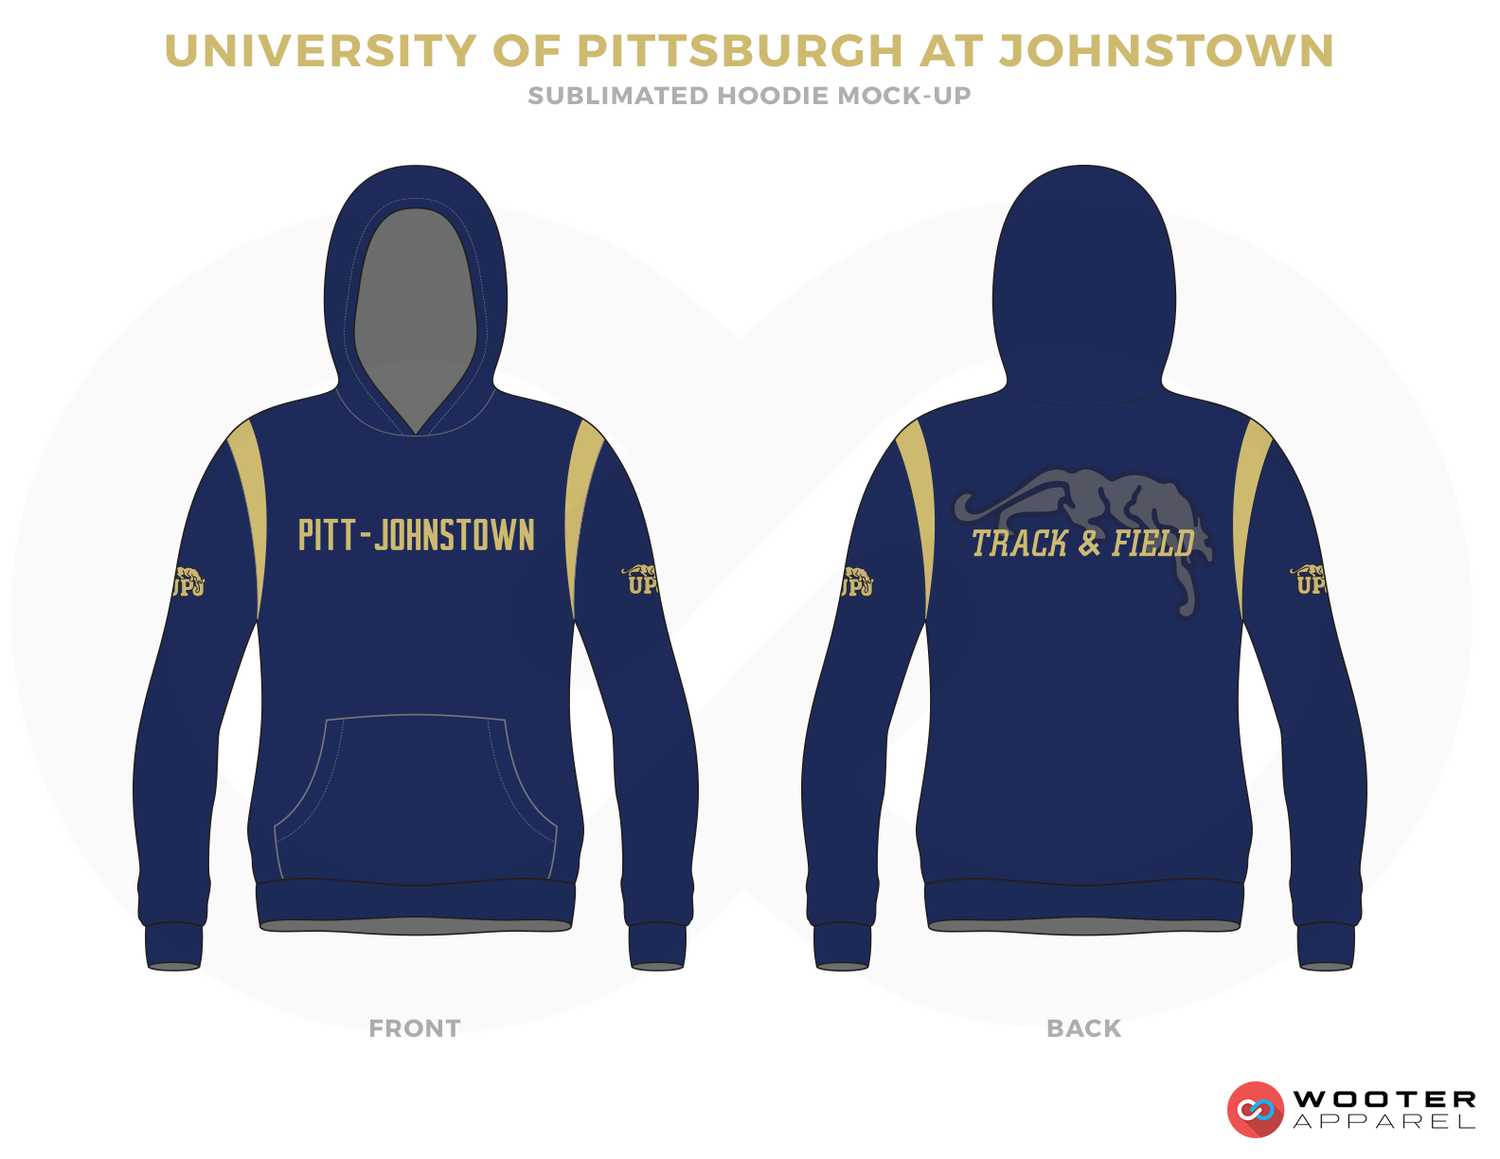 UNIVERSITY OF PITTSBURGH AT JOHNSTOWN Blue Vegas Gold and Grey Baseball Uniforms, Hoodies